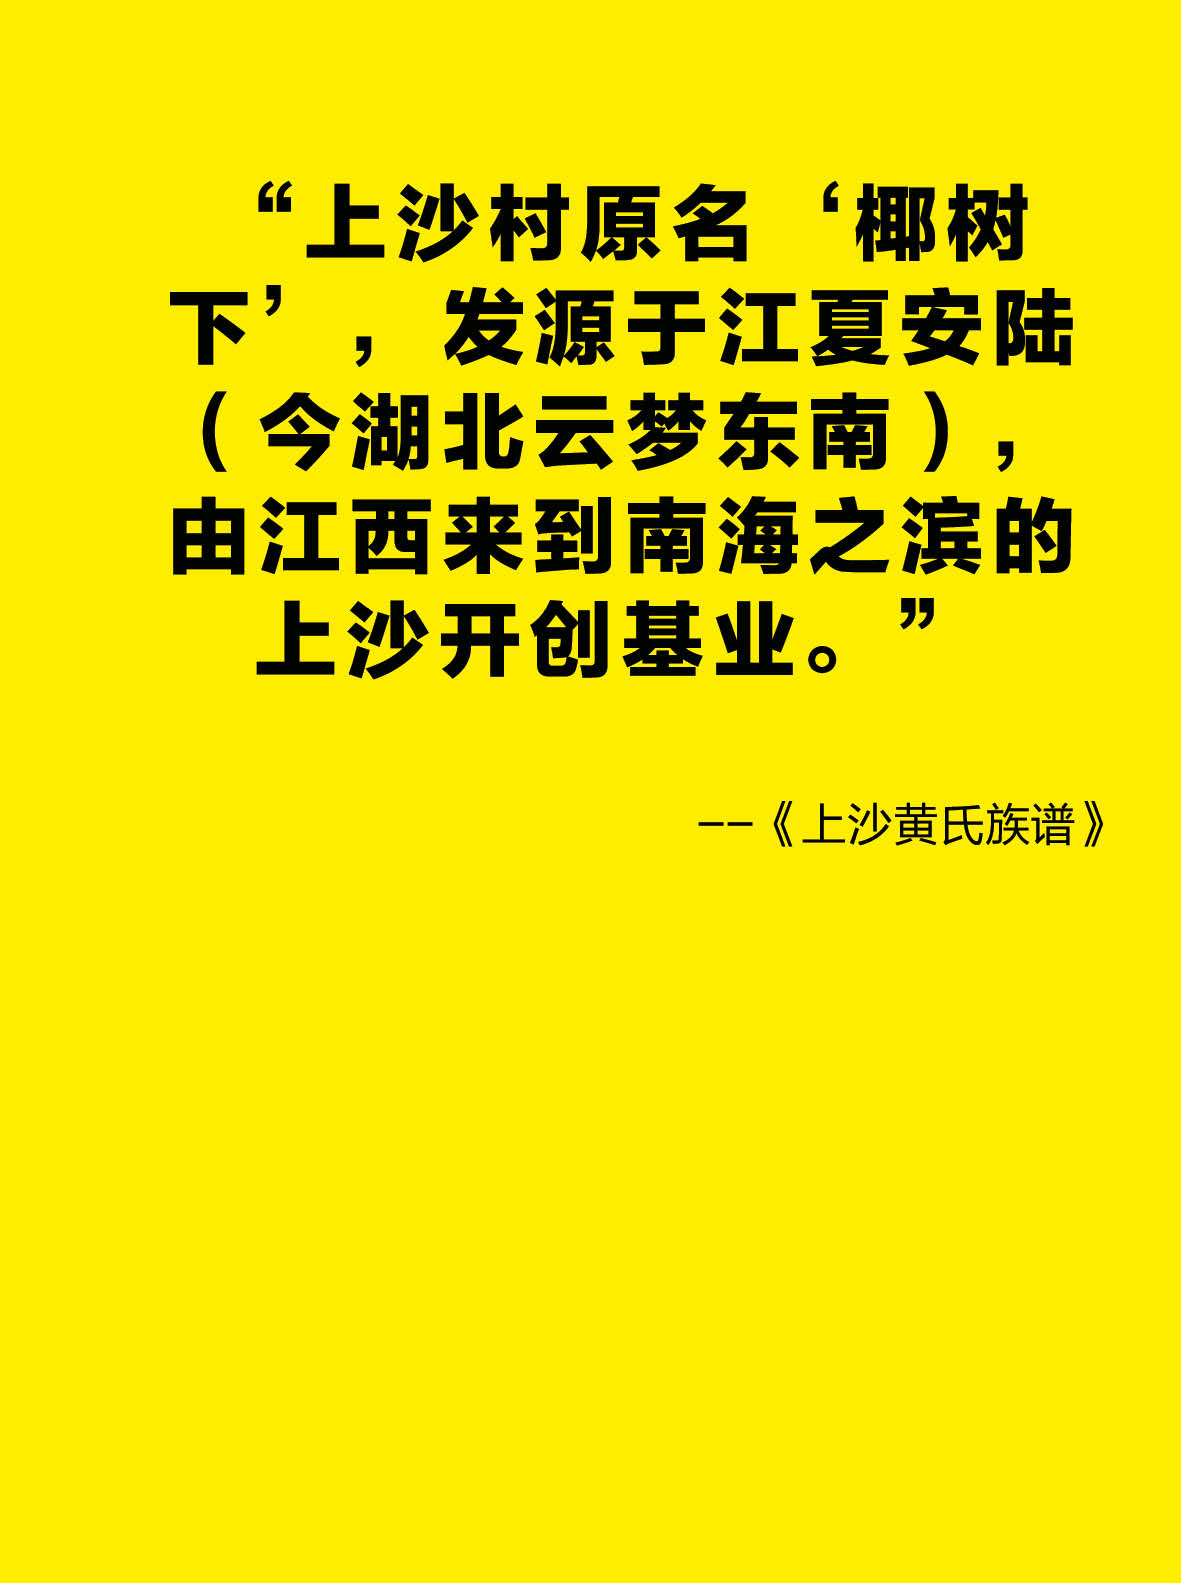 20180106_Shangsha Quotes test0328.jpg